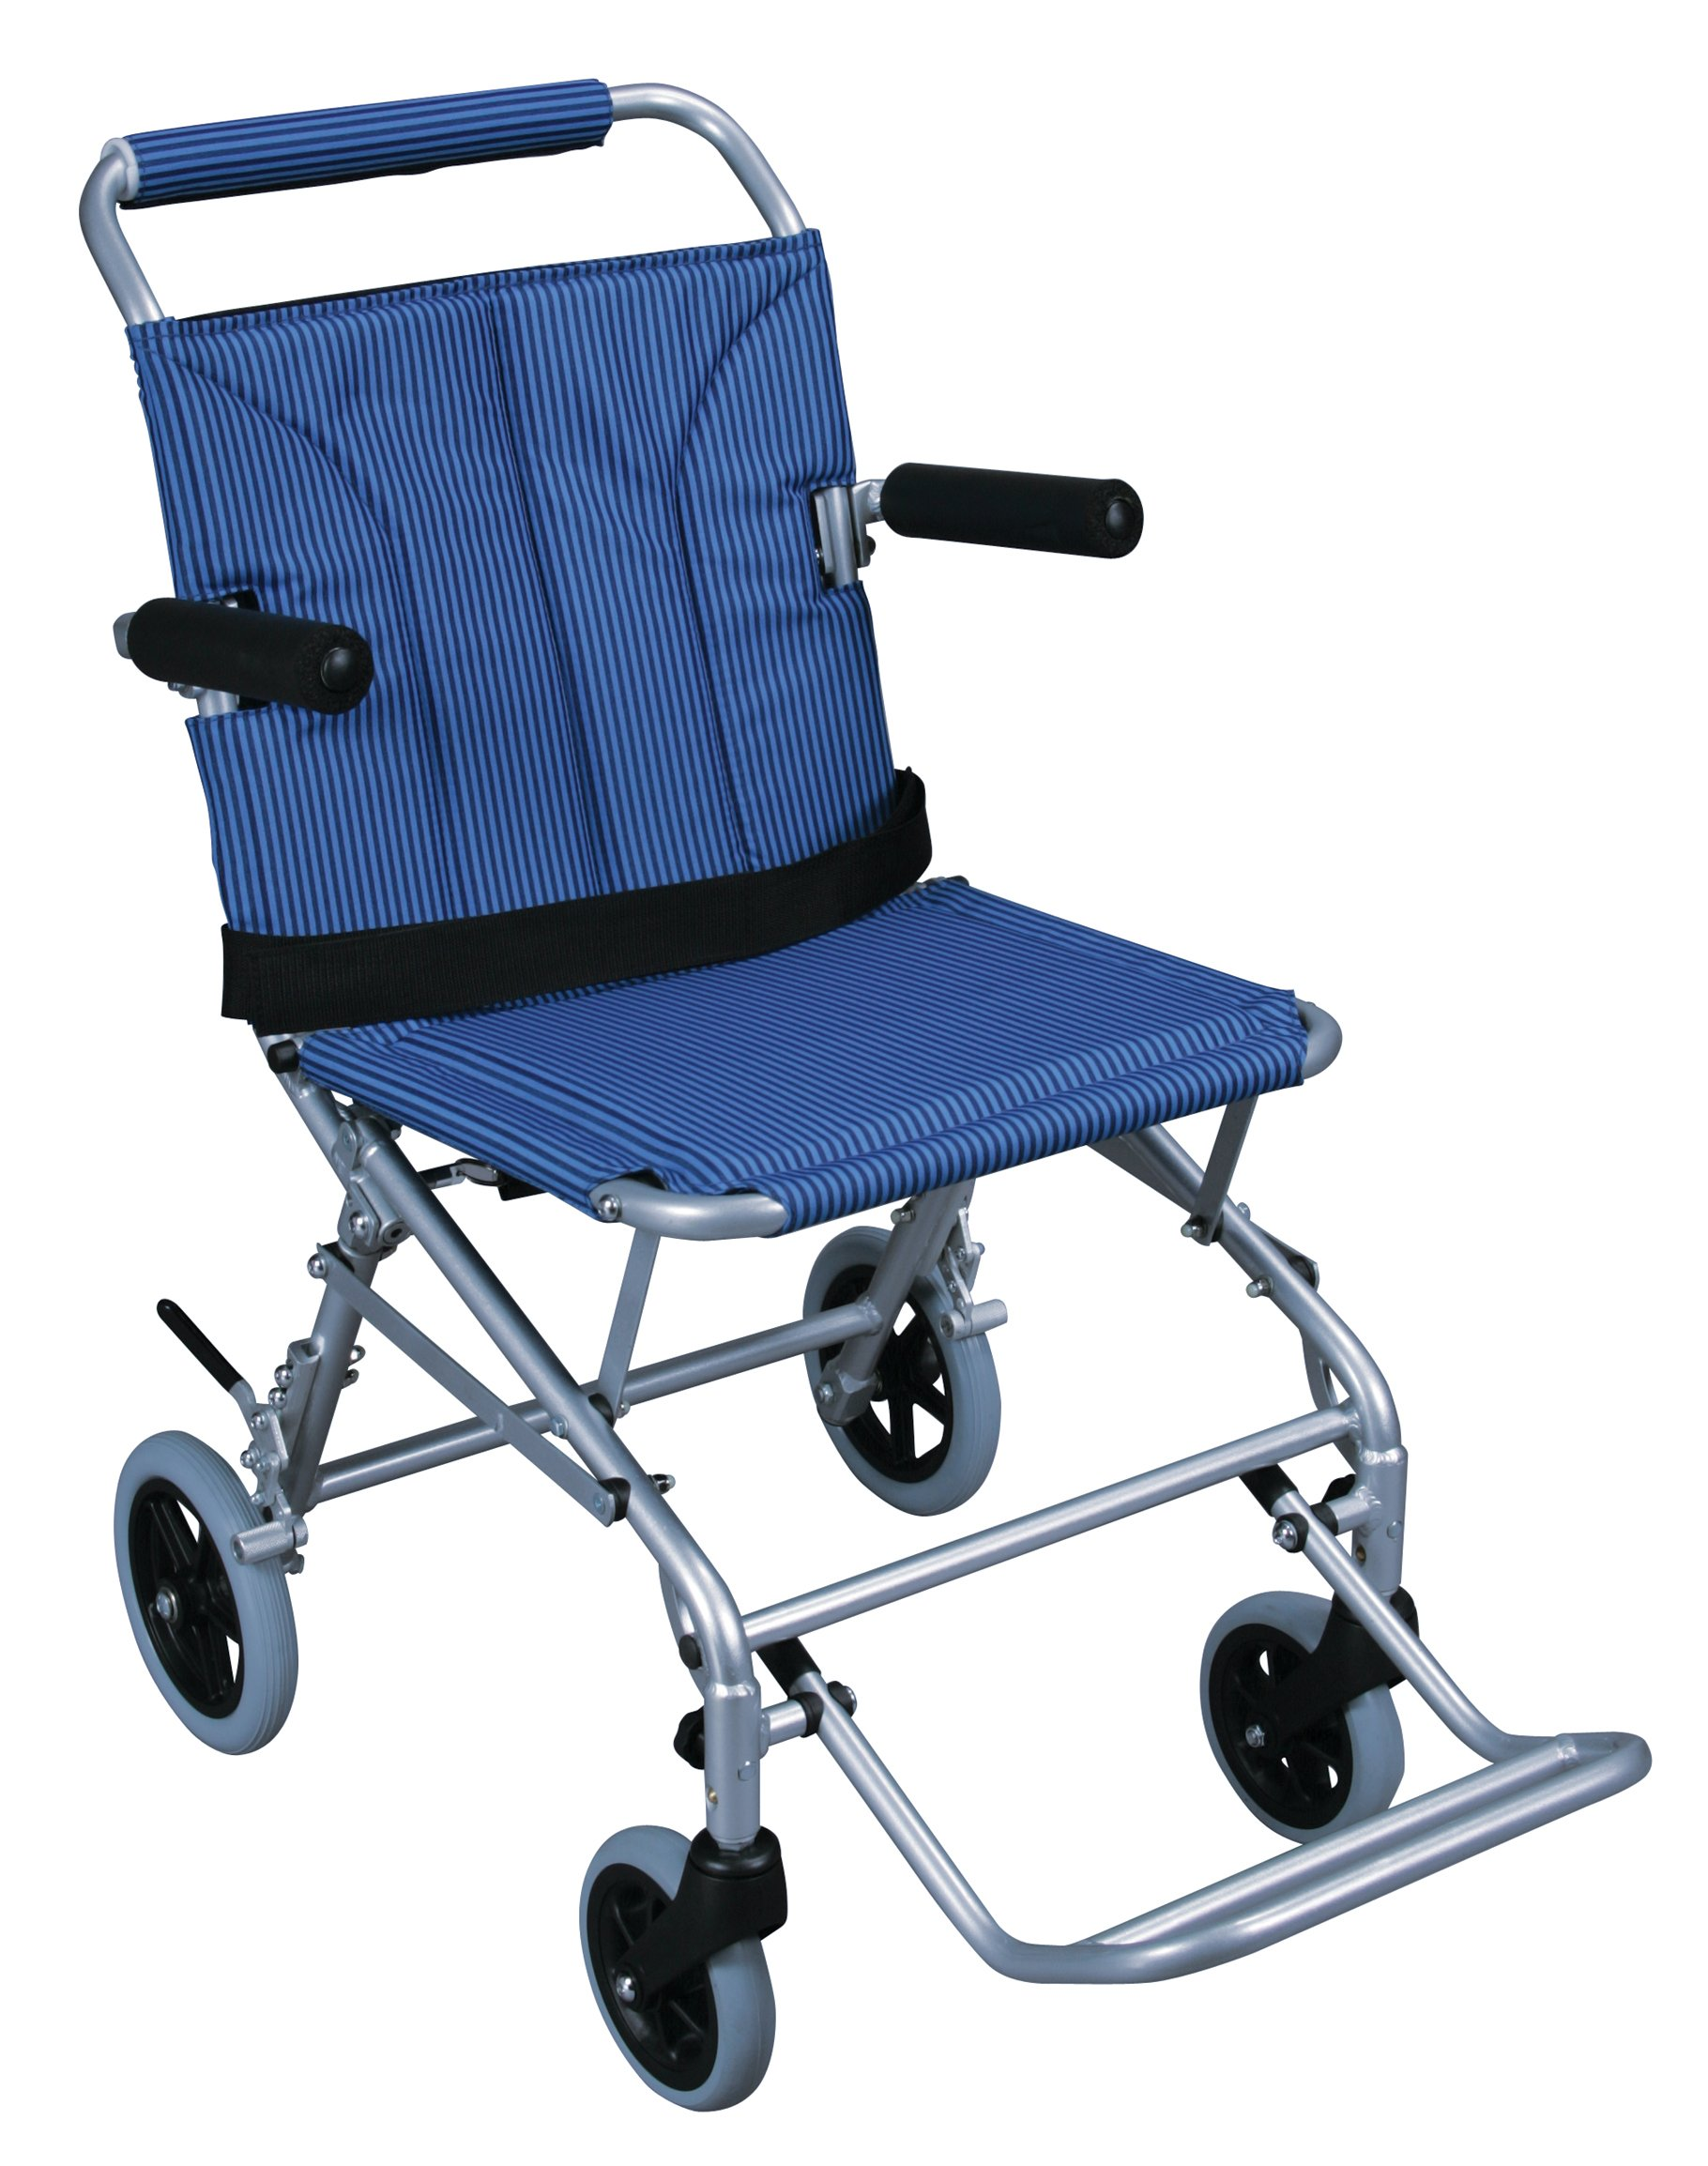 Drive Medical Super Light, Folding Transport Chair with Carry Bag, Blue by Drive Medical